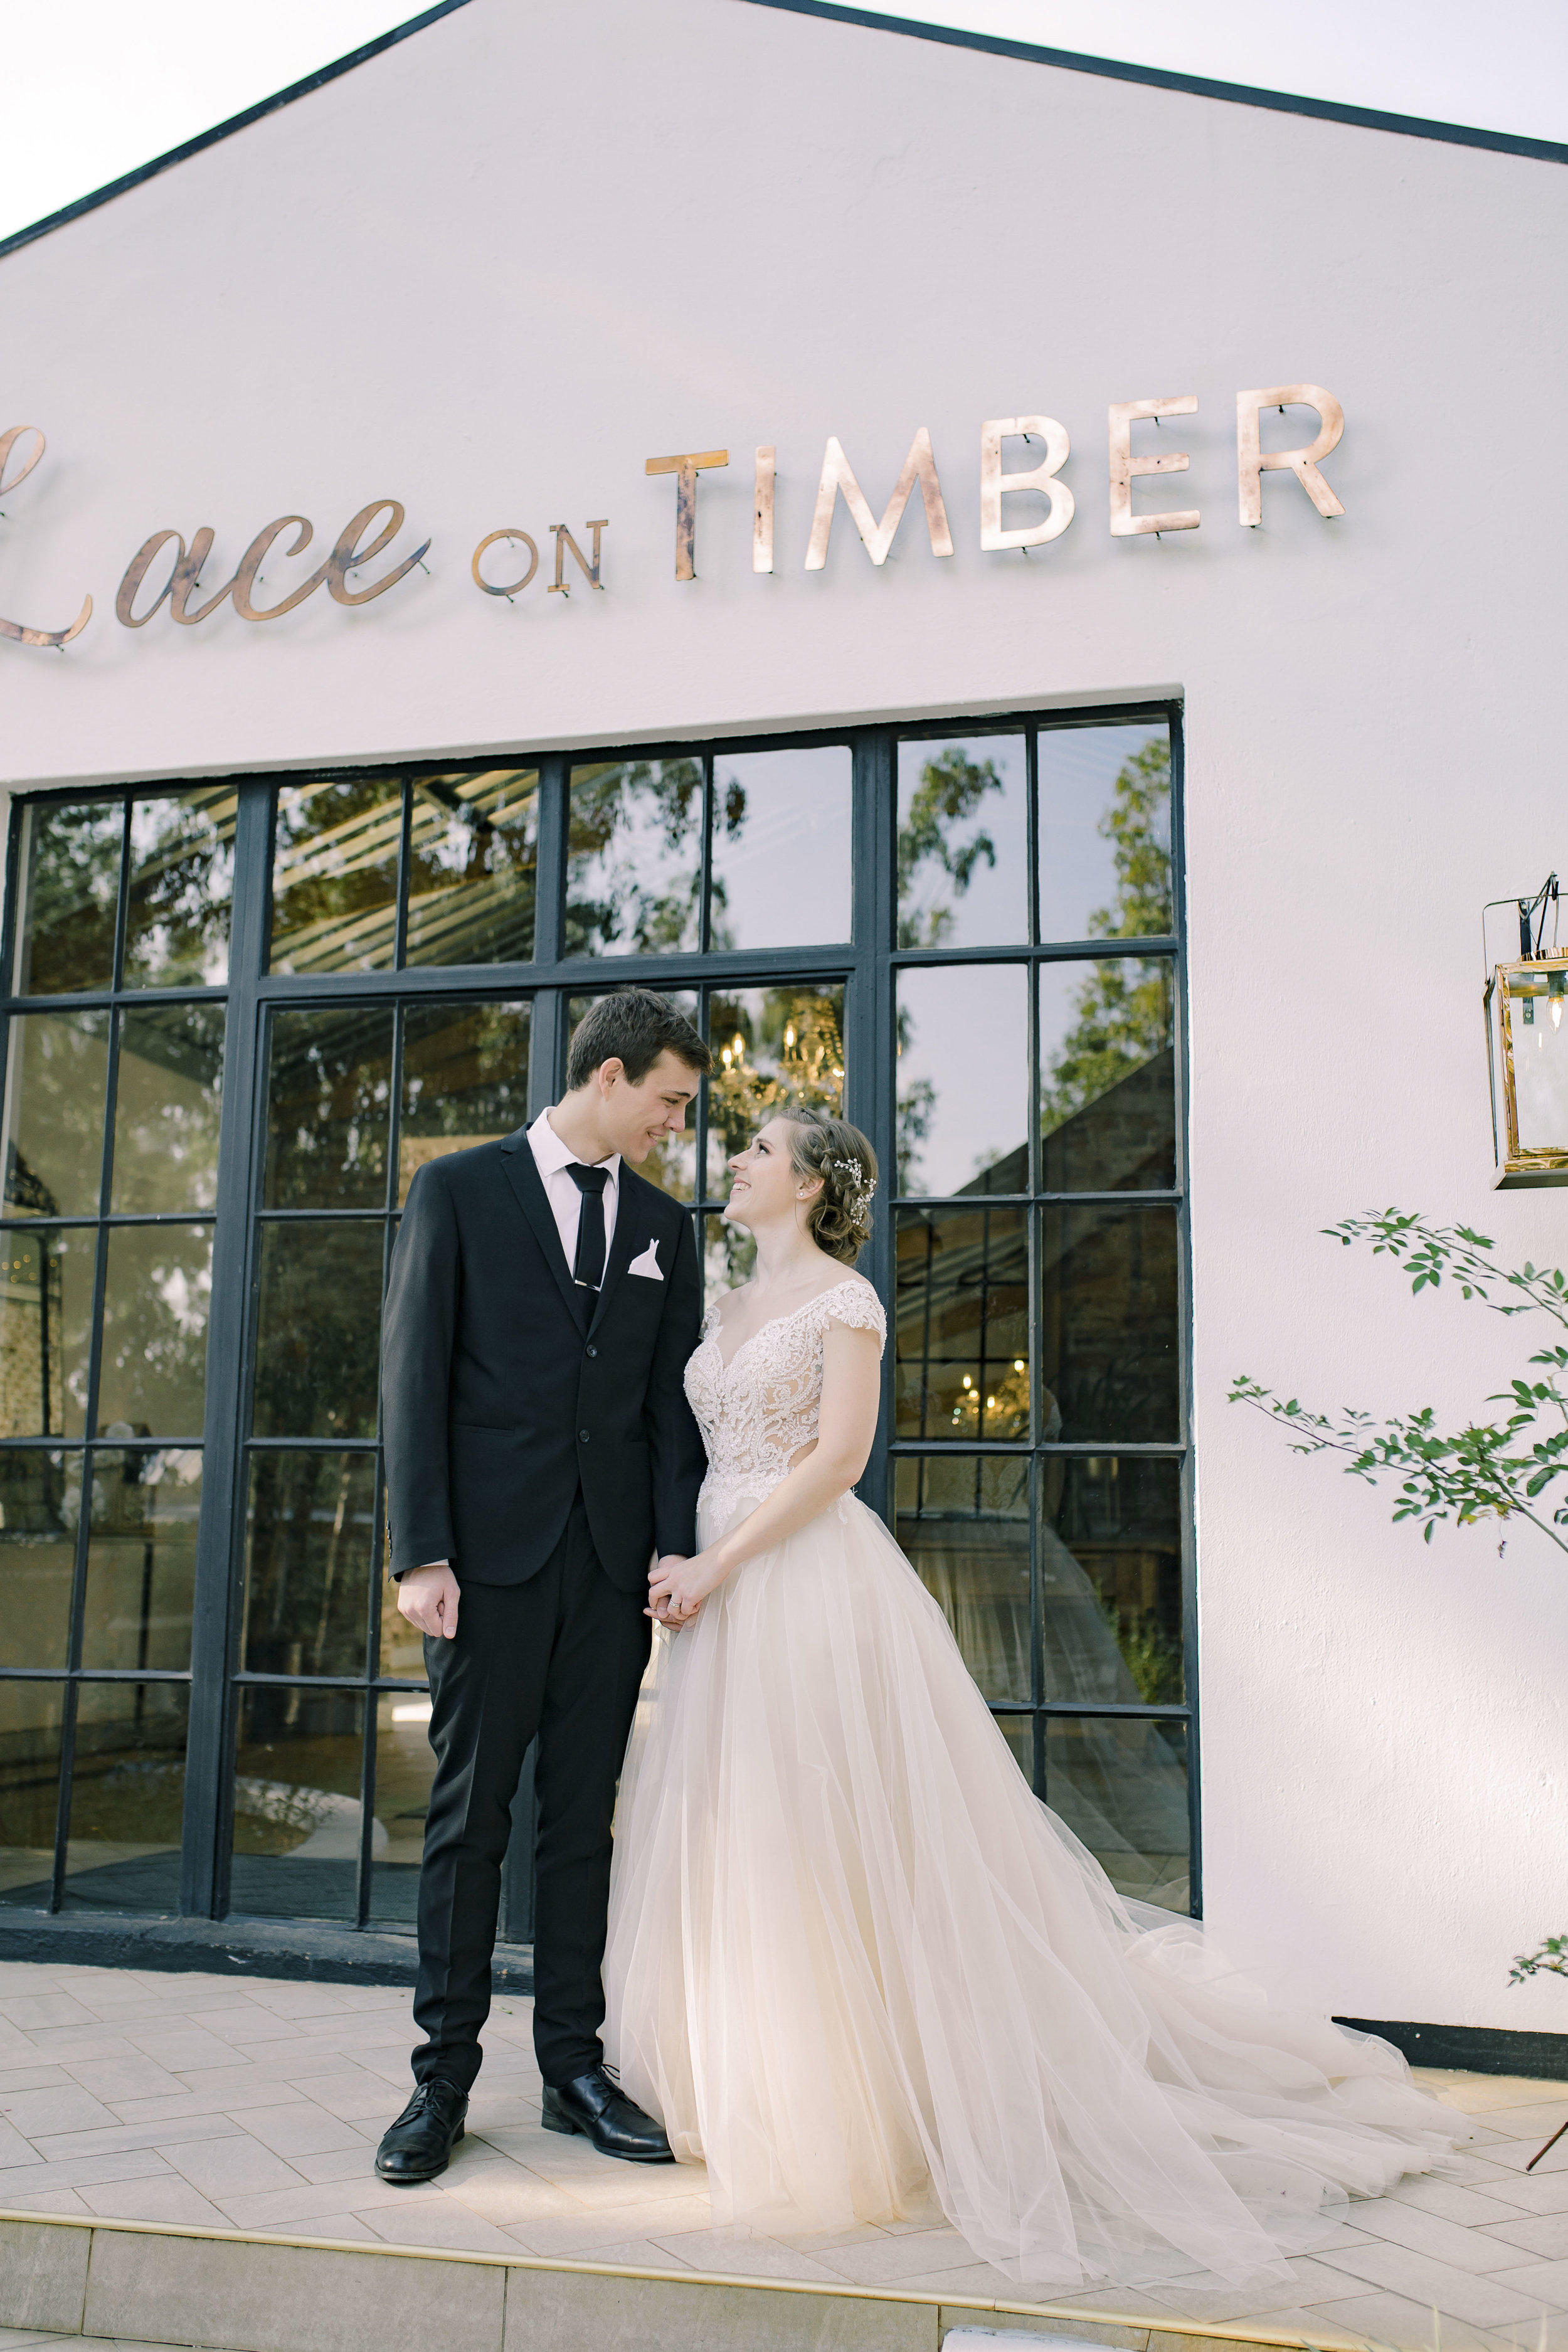 Lace on Timber wedding 2019